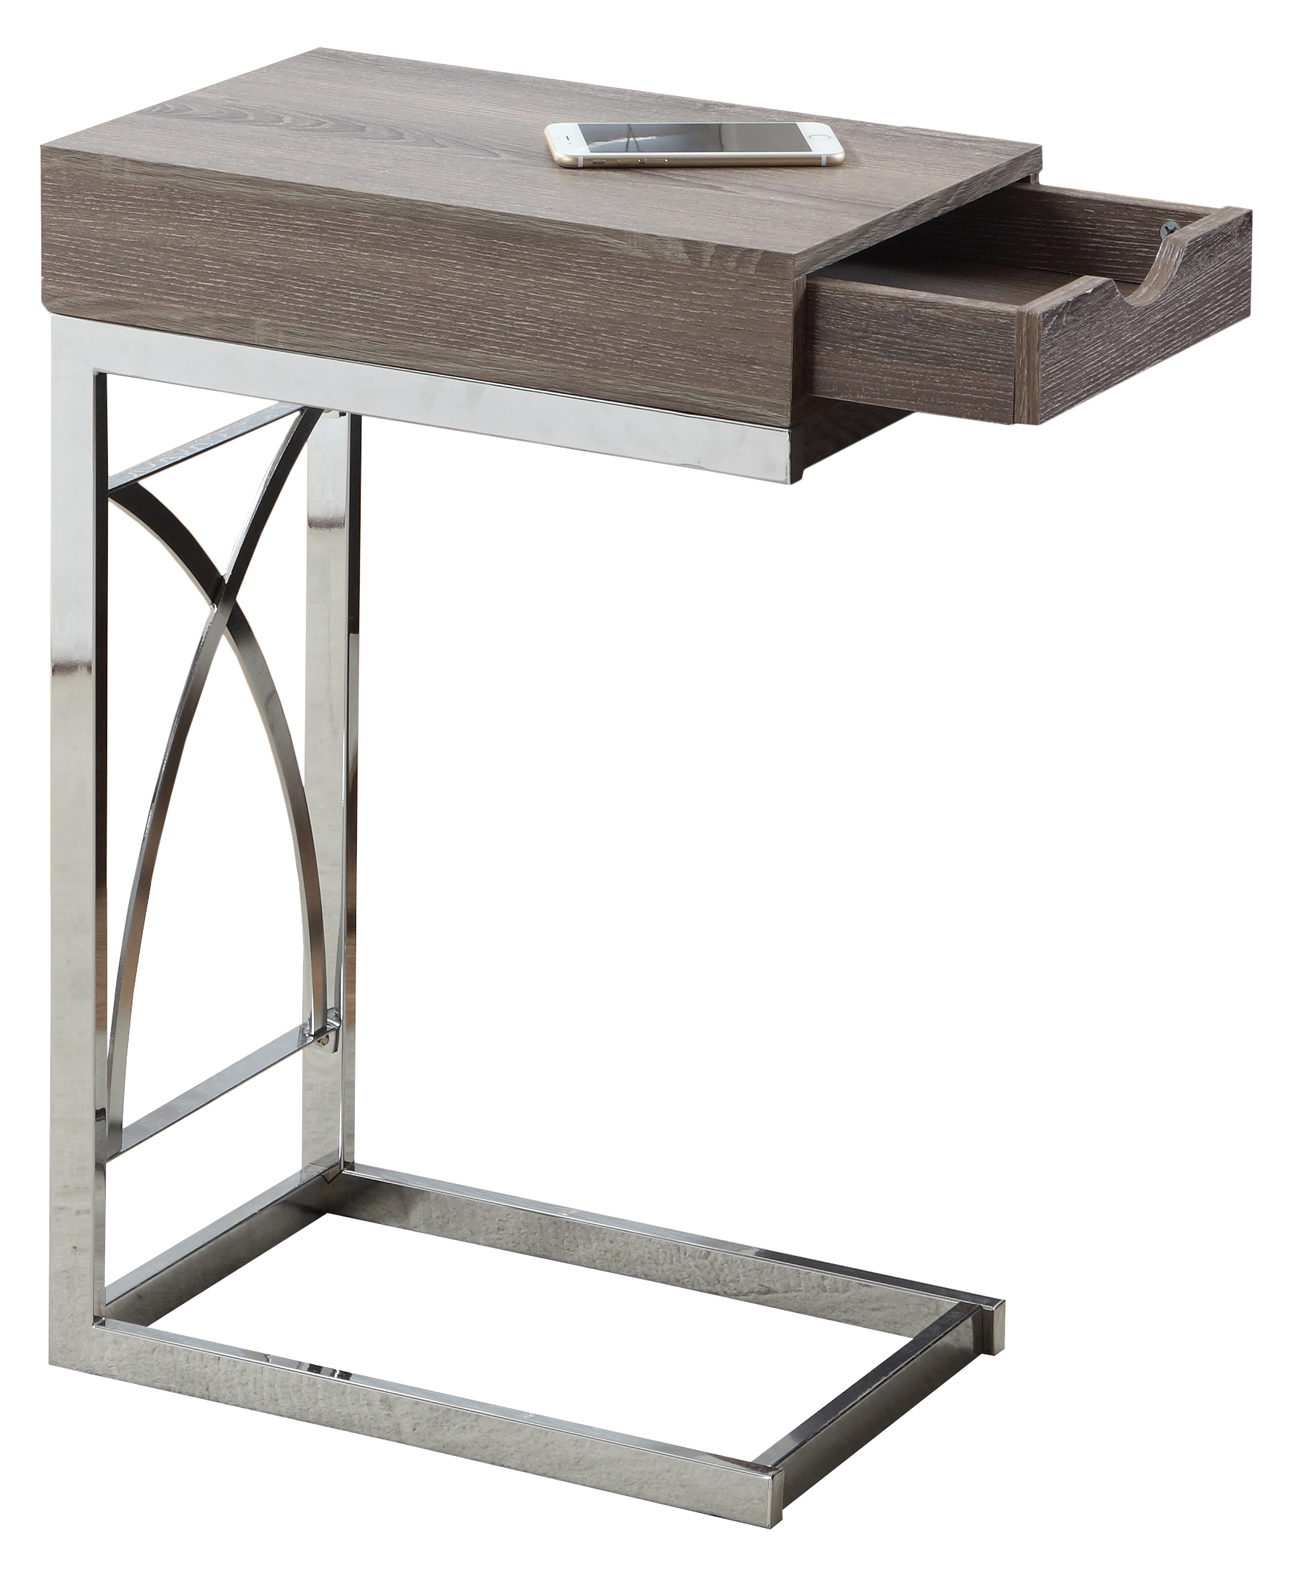 "24"" Accent Table With A Drawer, Chrome Metal Base and Dark Taupe Top"